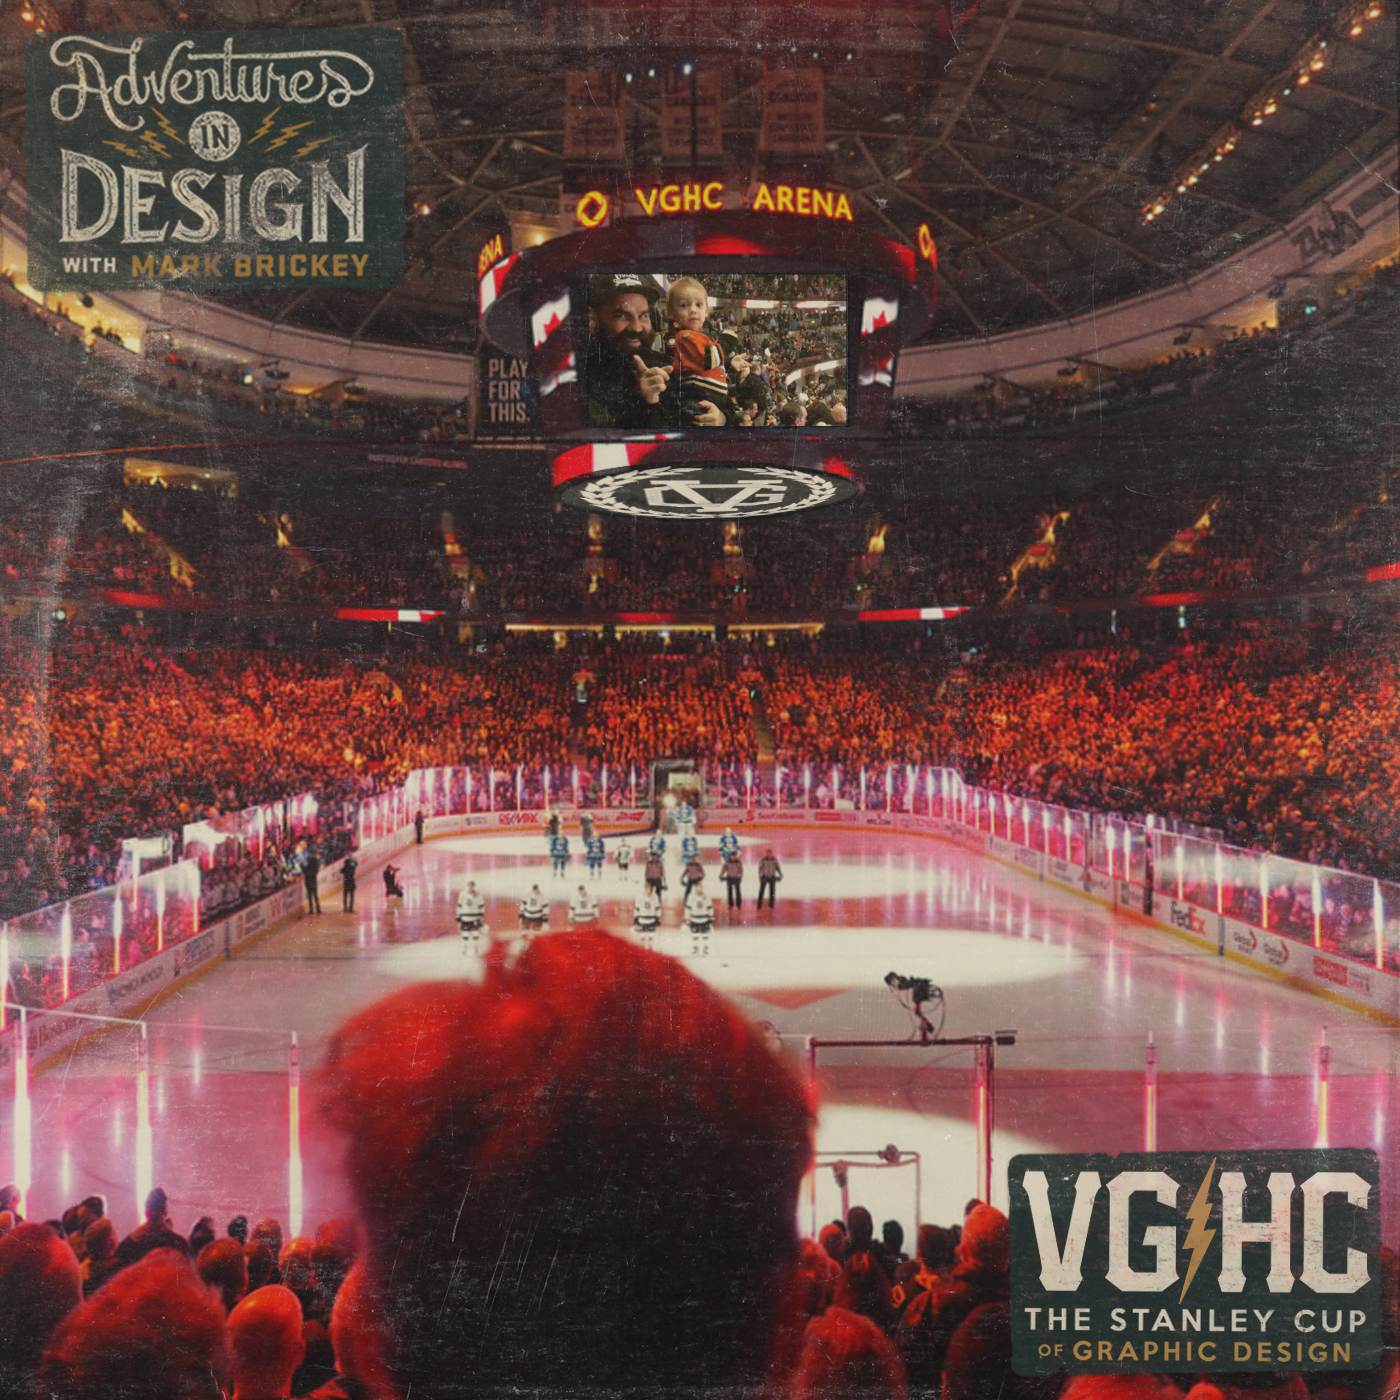 371 - The Stanley Cup of Graphic Design with The Violent Gentlemen Brian Talbert and Mike Hammer